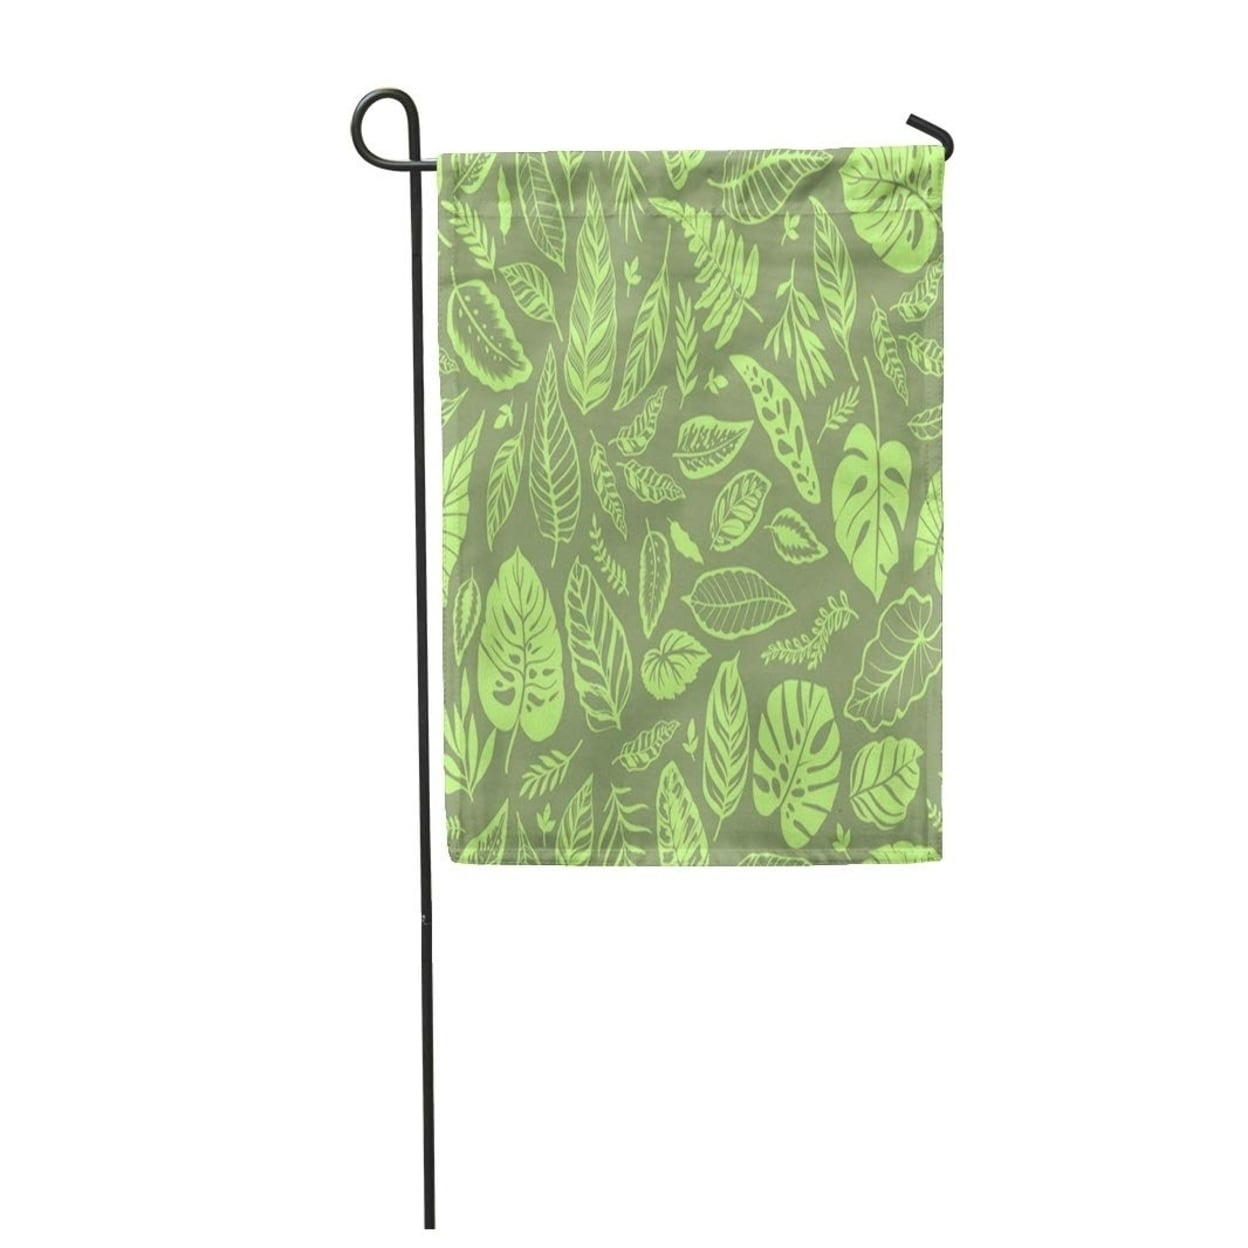 Shop Tropical Leaves Bright Jungle Pattern And Exotic Plant The Elegant Hawaiian Motifs Garden Flag Decorative Flag House On Sale Overstock 31377448 Use these free tropical motifs png #5870 for your personal projects or designs. overstock com